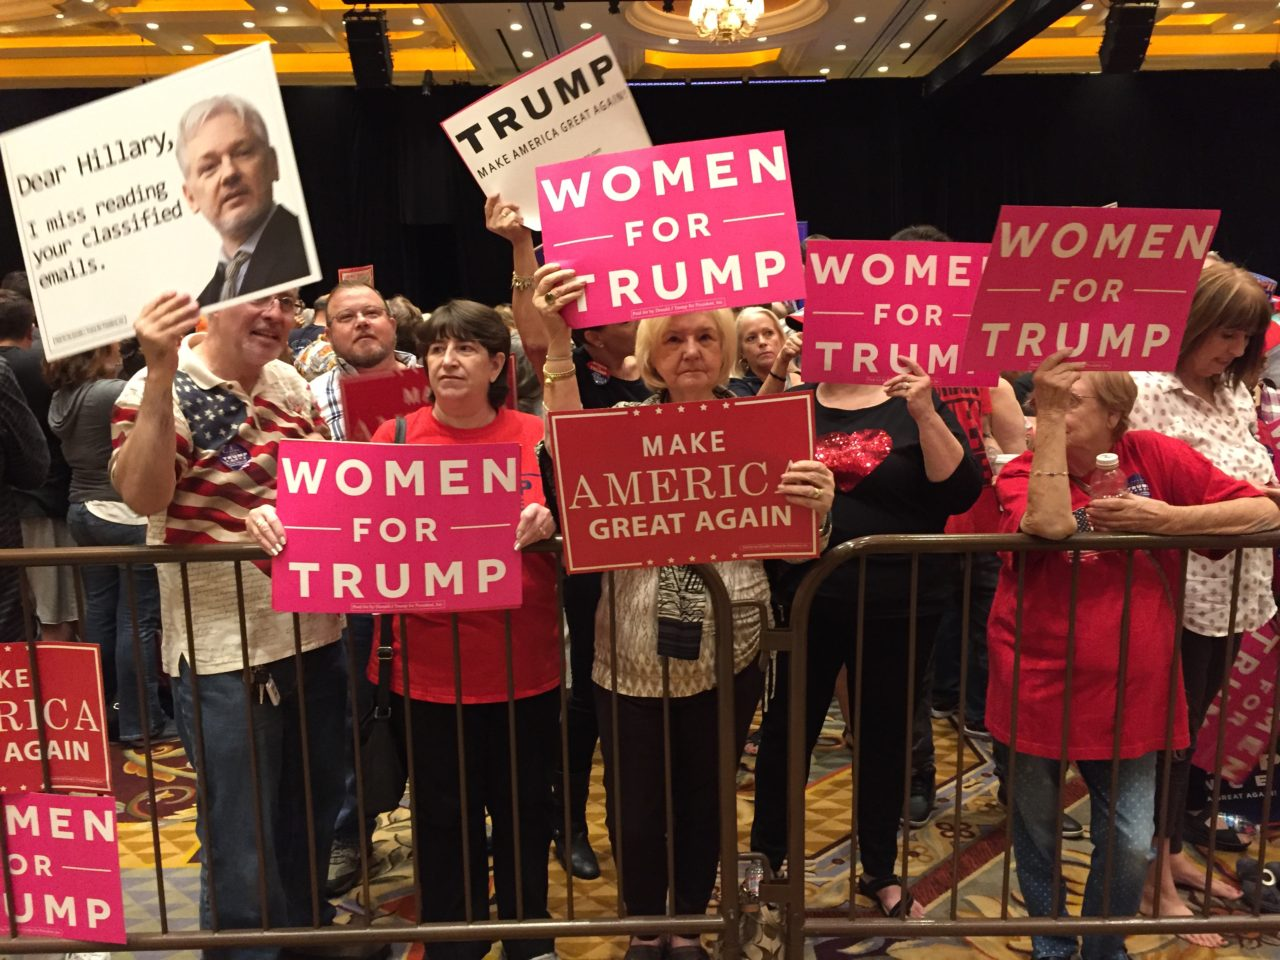 Women for Trump at Vegas rally (Joel Pollak / Breitbart News)